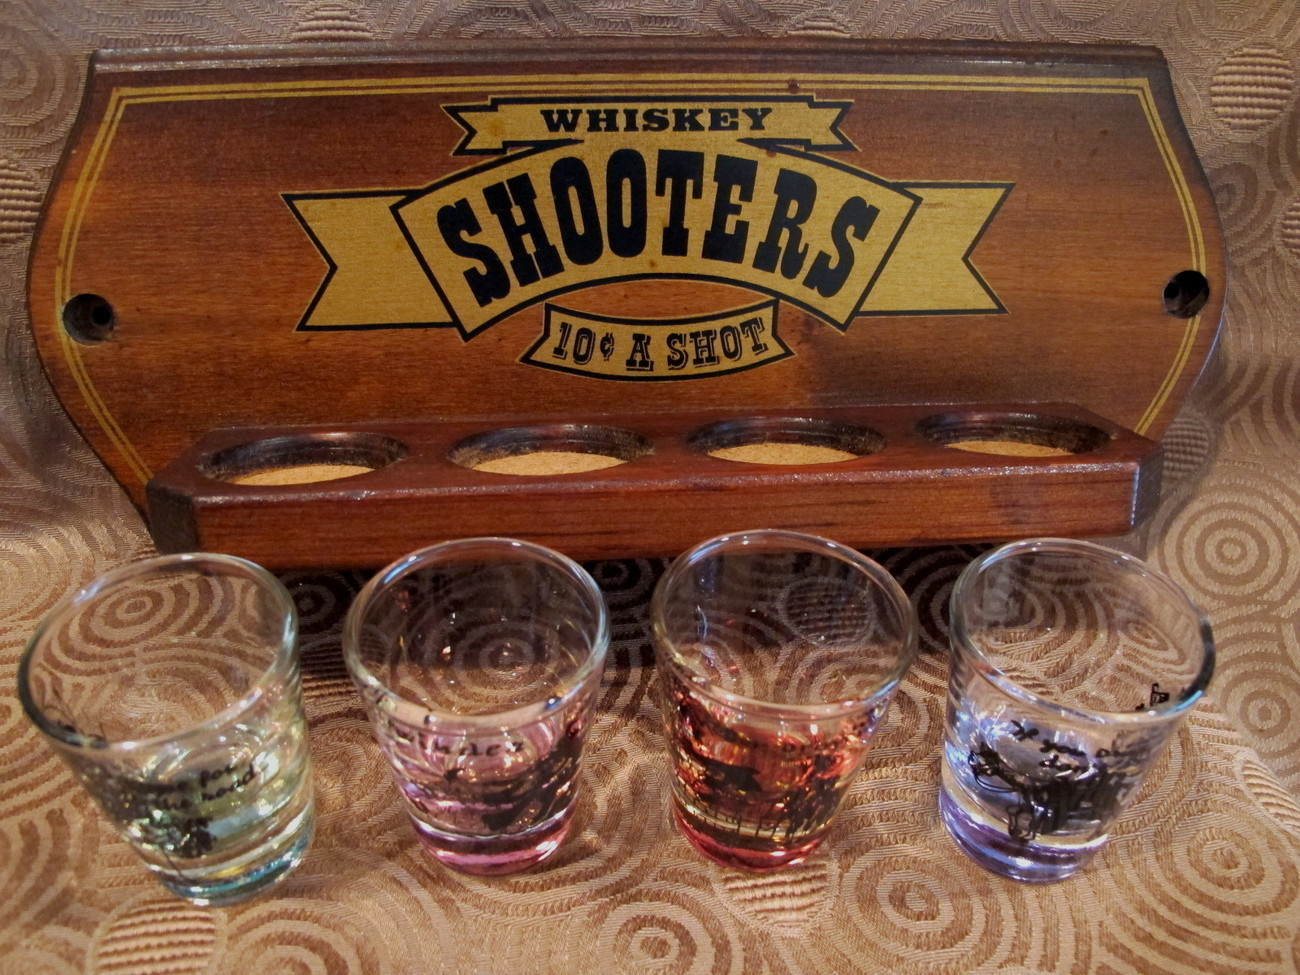 Whiskey Whisky Shooters Shot Glass set of 4 Vintage Souvenir Collectible Stand